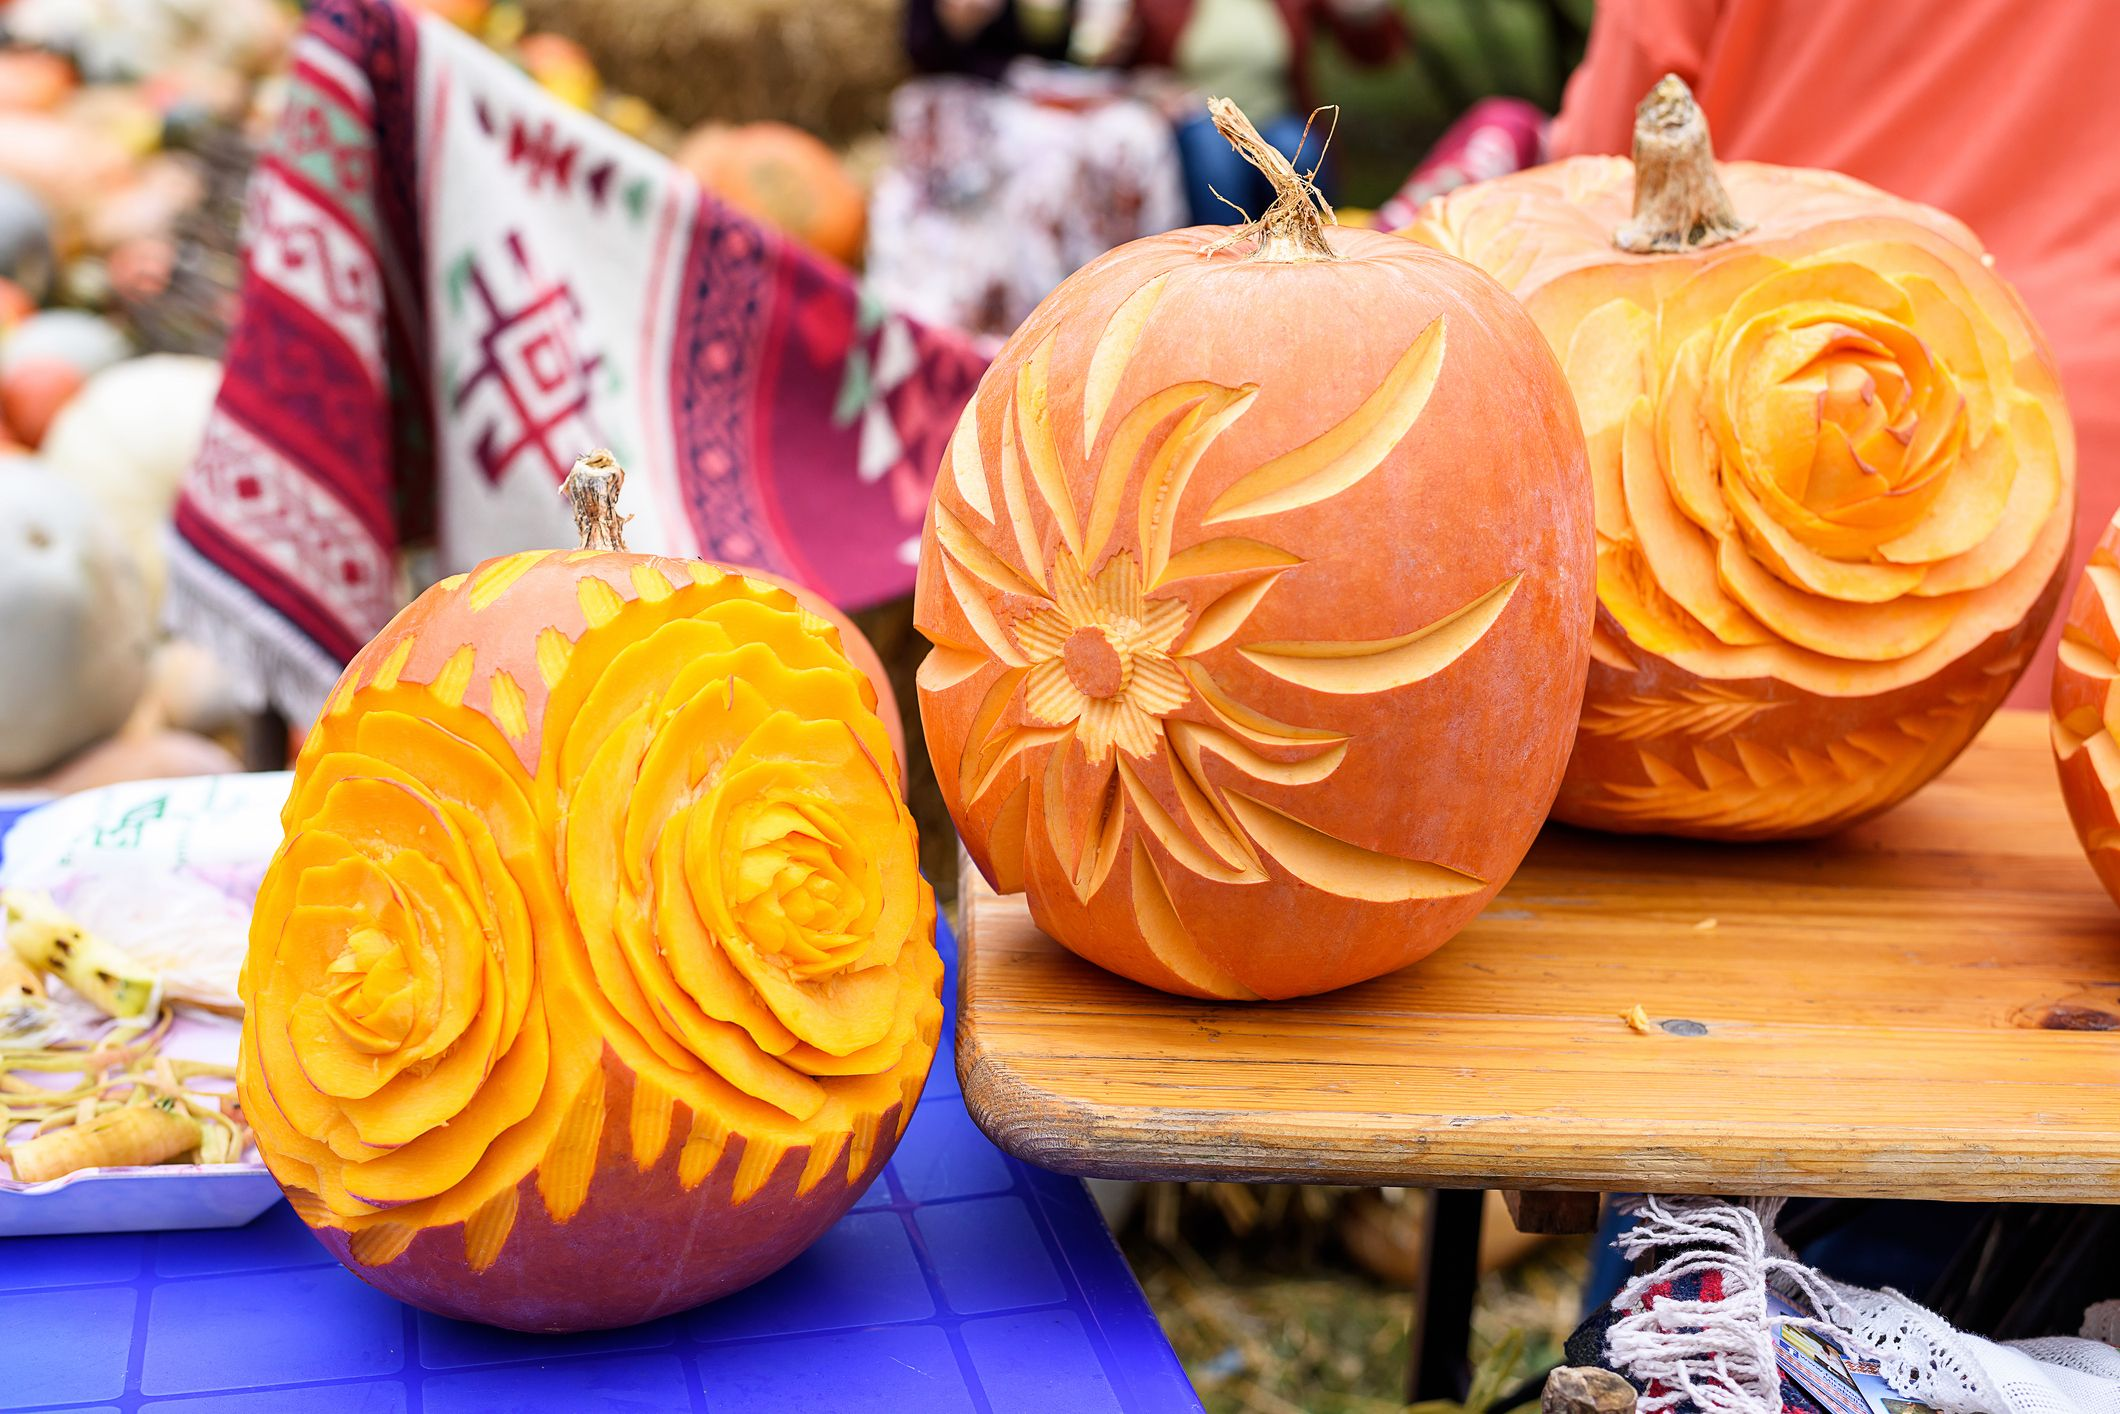 carved flower pumpkins & 60+ Pumpkin Designs We Love for 2018 - Pumpkin Decorating Ideas